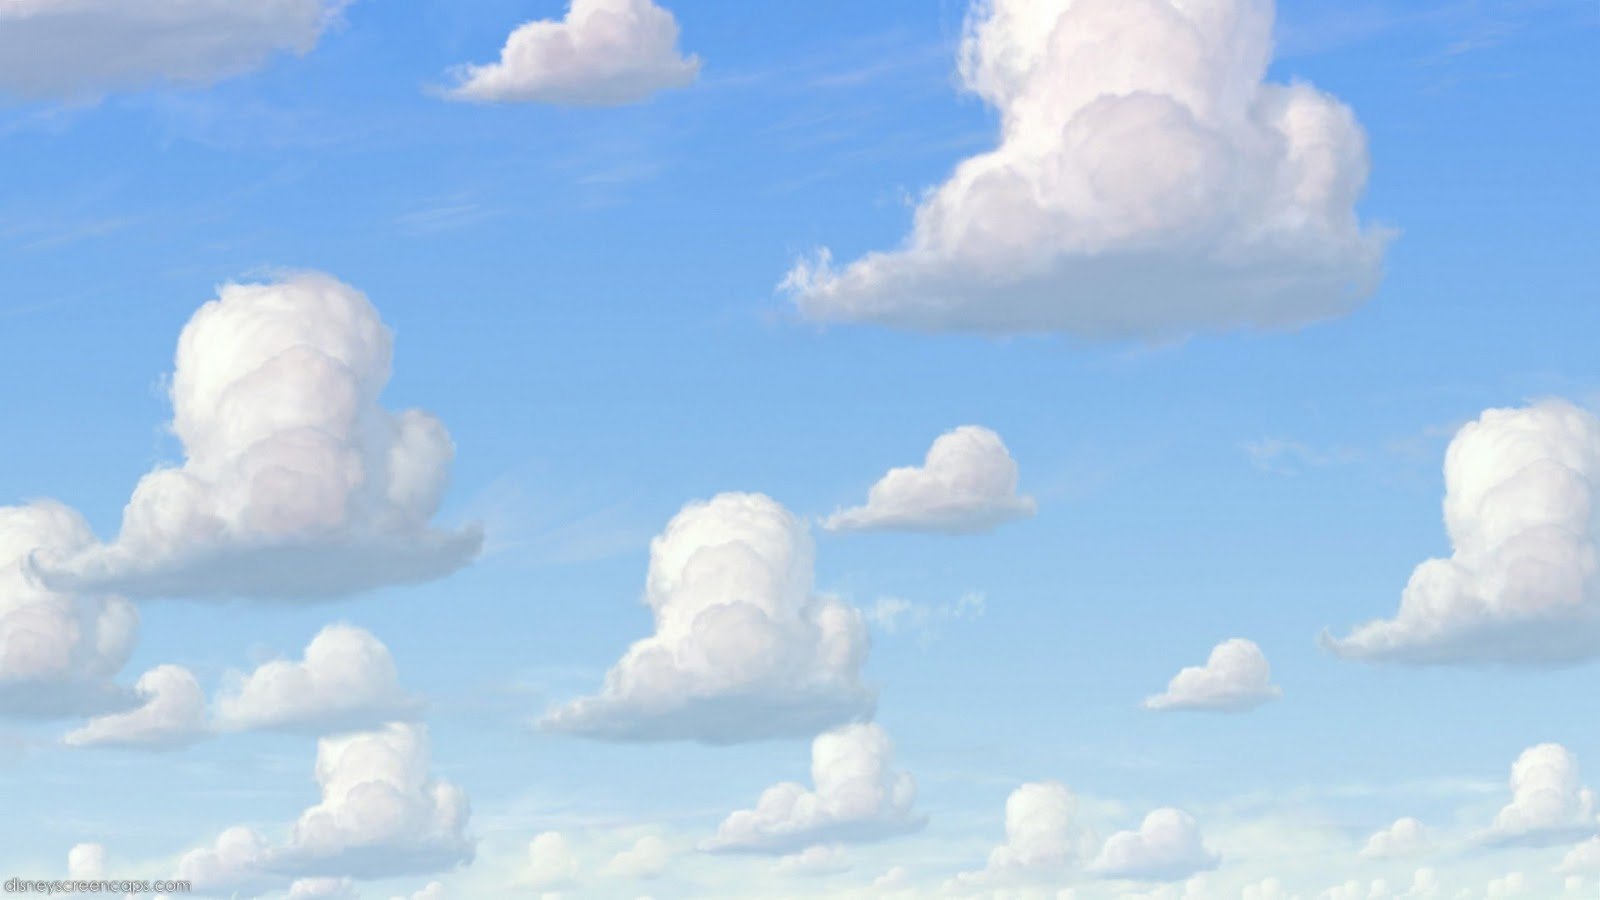 pin clouds toy story tagnotallowedtoosubjective 2560x1600